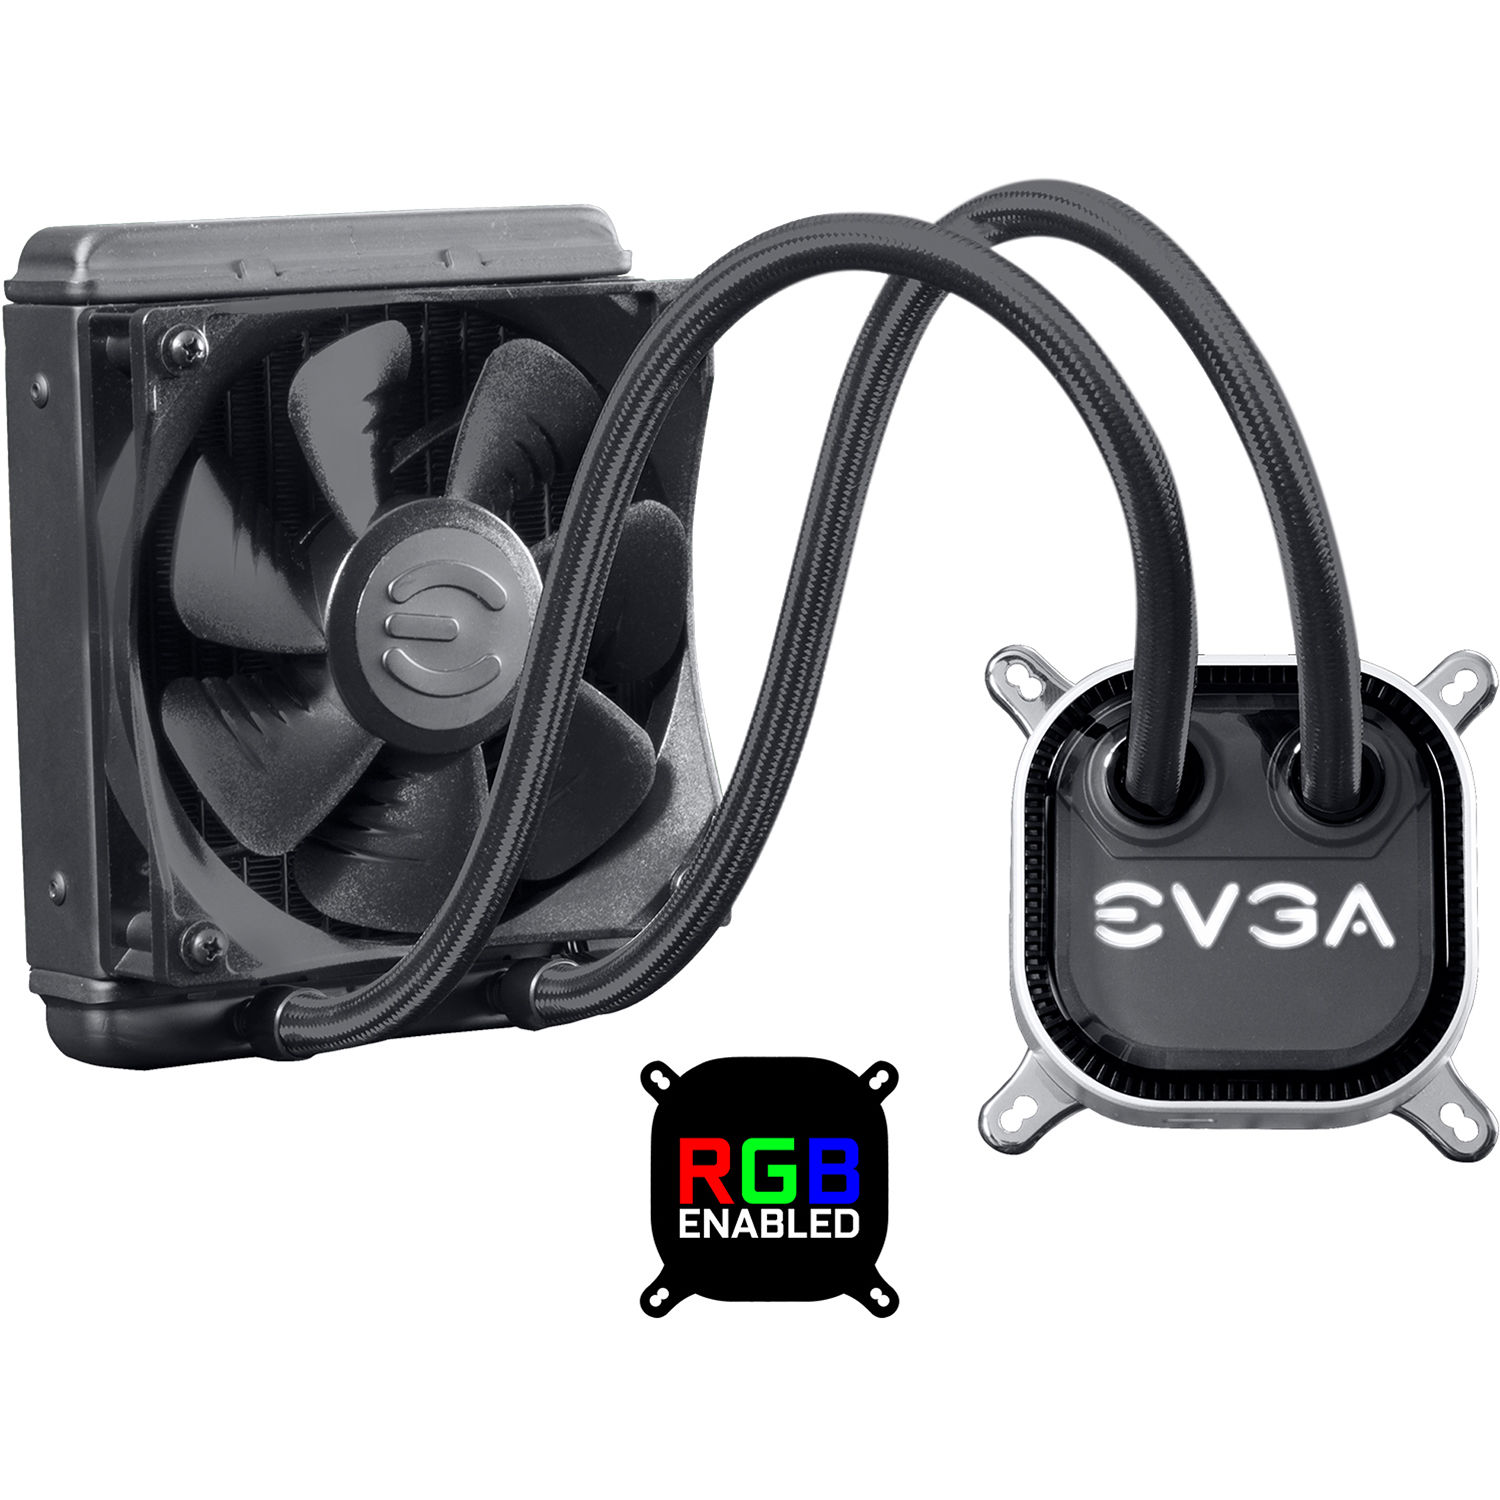 Evga Clc 120 Liquid Cpu Cooler With Rgb Led 400 Hy Cl12 V1 Bh Circuits Reviews Online Shopping On Lighting